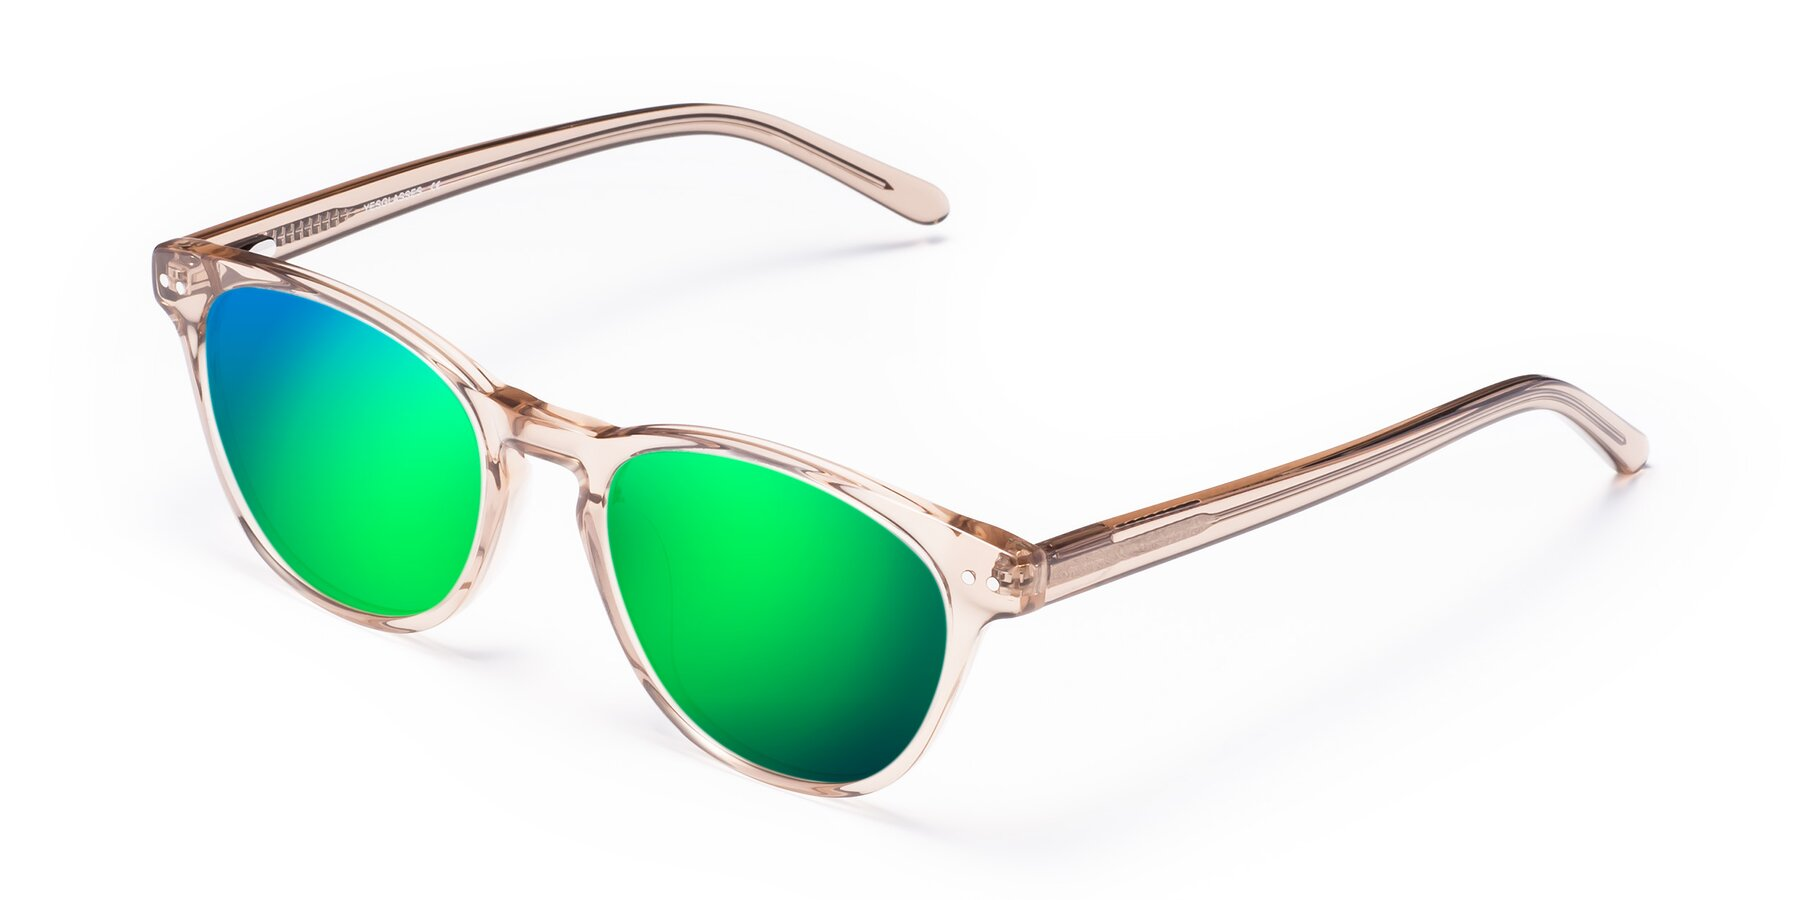 Angle of Blaze in light Brown with Green Mirrored Lenses